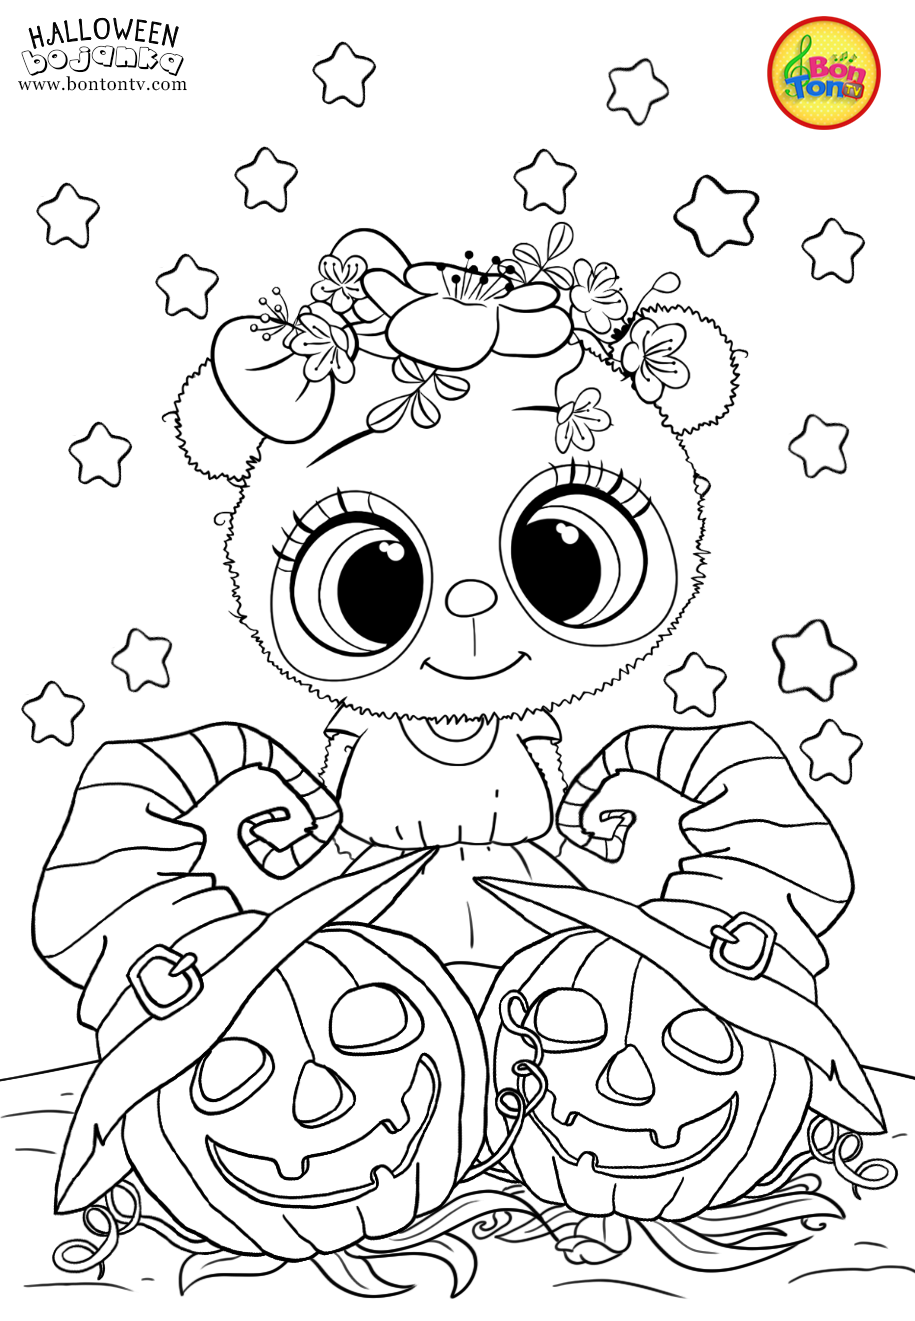 Halloween Coloring Pages for Kids Free Preschool